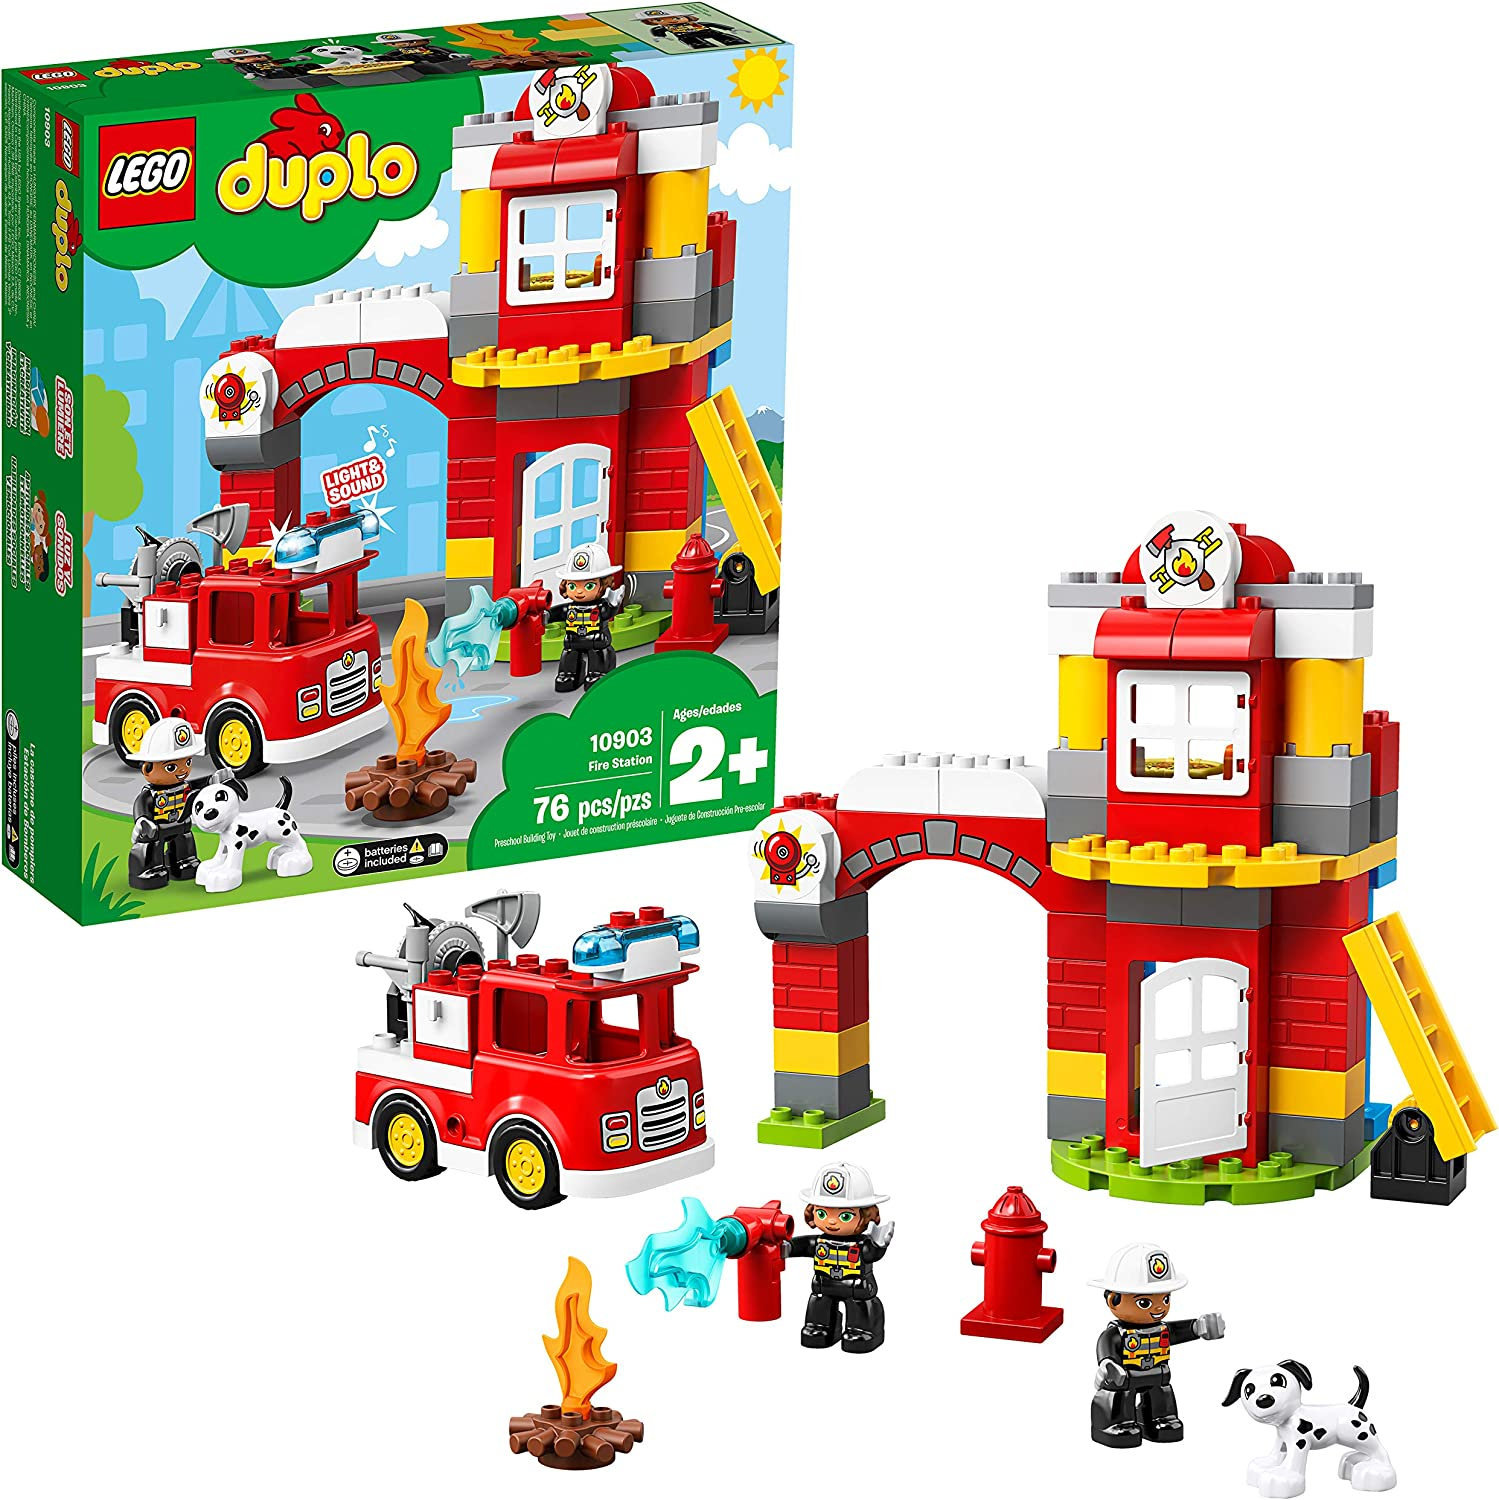 LEGO DUPLO Town Fire Station 10903 Building Blocks, 2019 (76 Pieces)